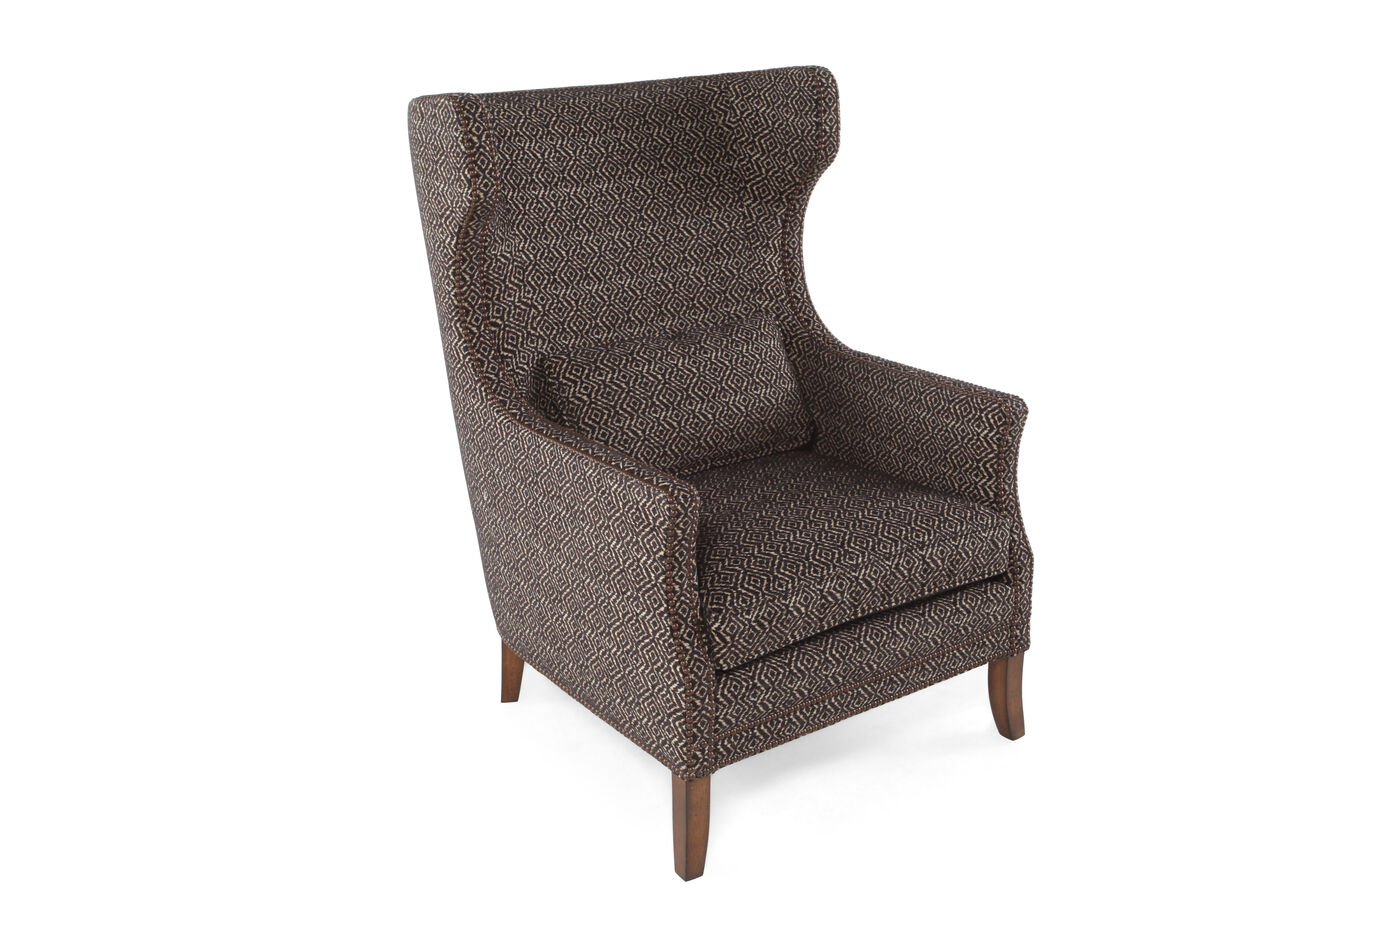 geometric patterned european classic 31 chair in cocoa mathis brothers furniture. Black Bedroom Furniture Sets. Home Design Ideas